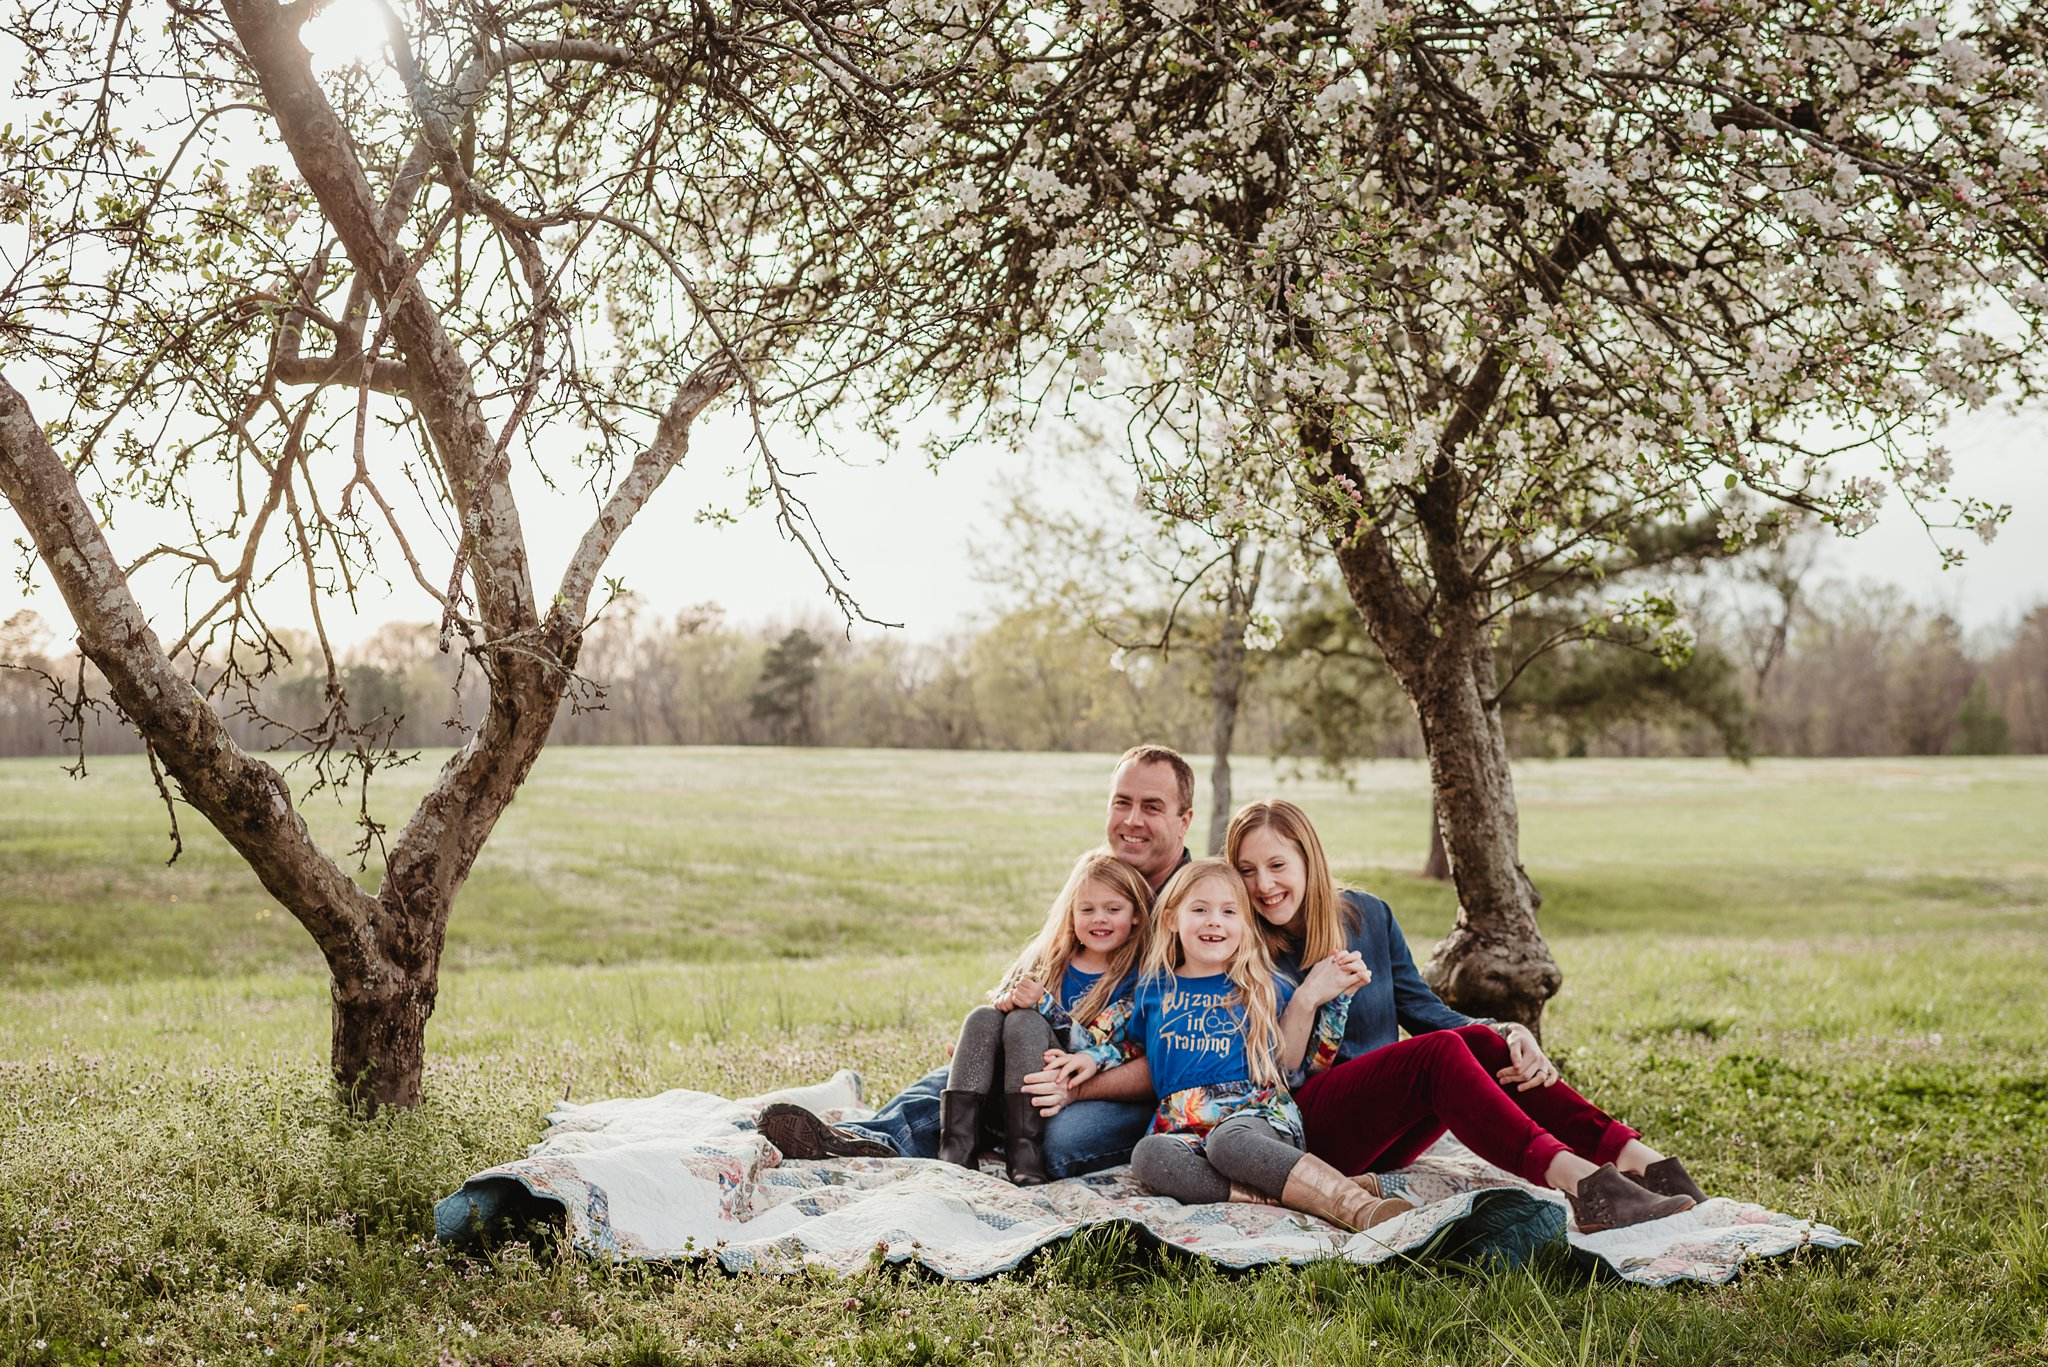 This family of four sat on their quilt and posed for Rose Trail Images during their family photo session in Wake Forest, North Carolina.